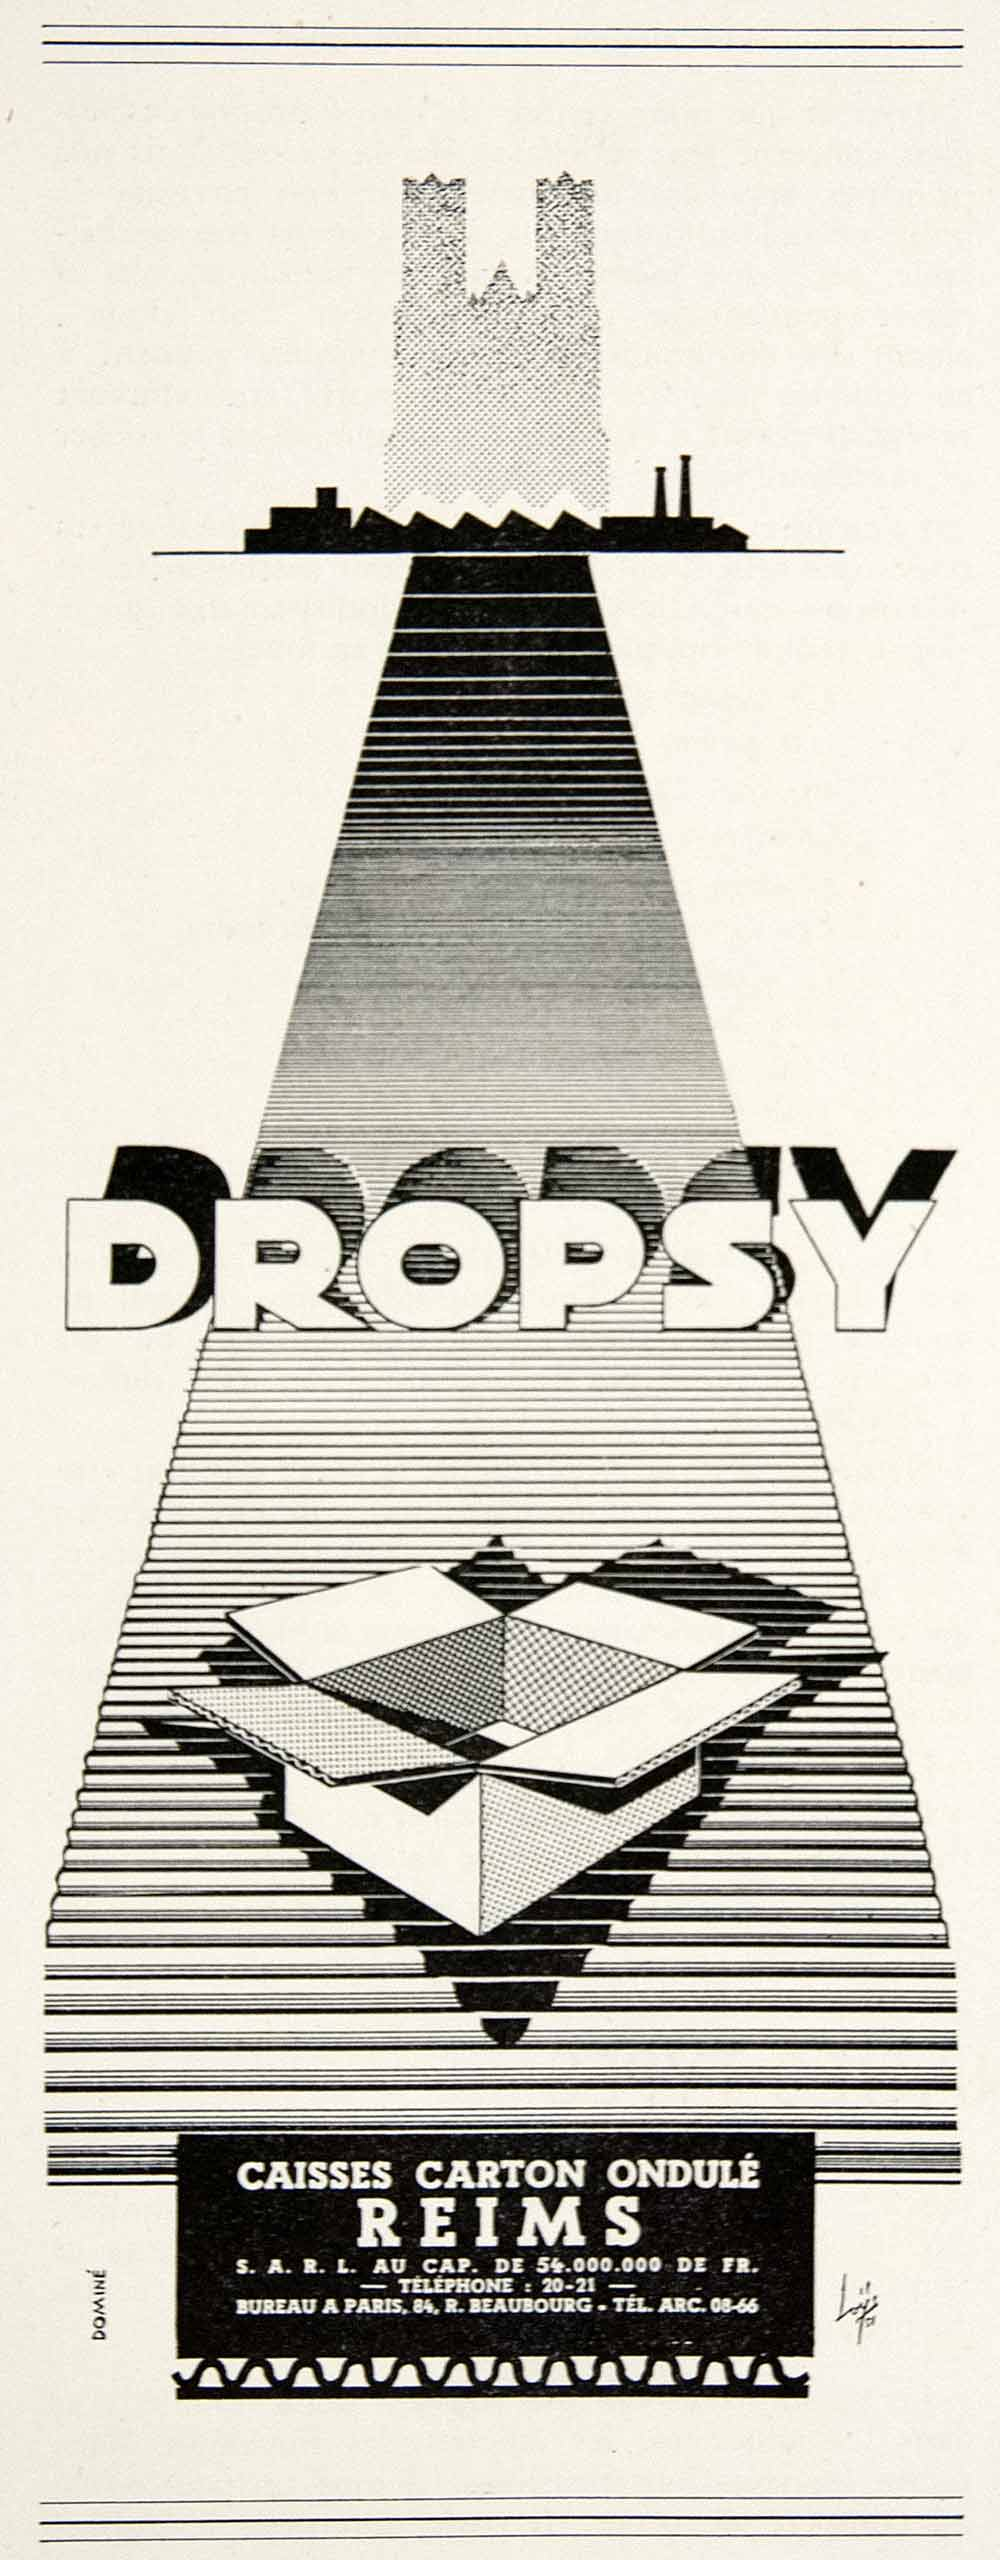 1953 Ad Dropsy Cardboard Boxes Reims Domine French Factory Conveyor Belt VEN8